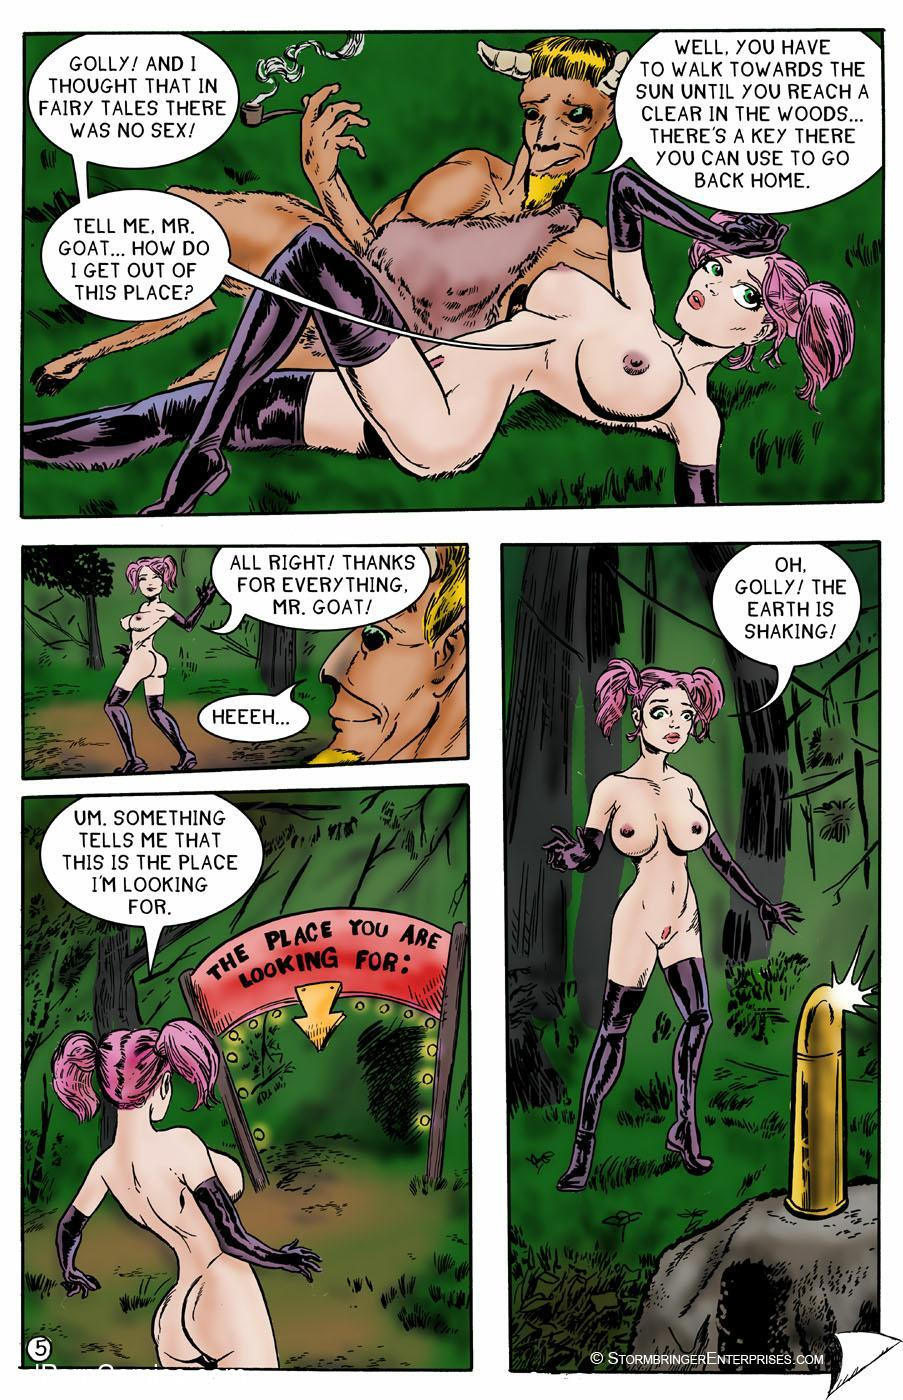 Erotic Adventures of Candice 01-1872 free sex comic